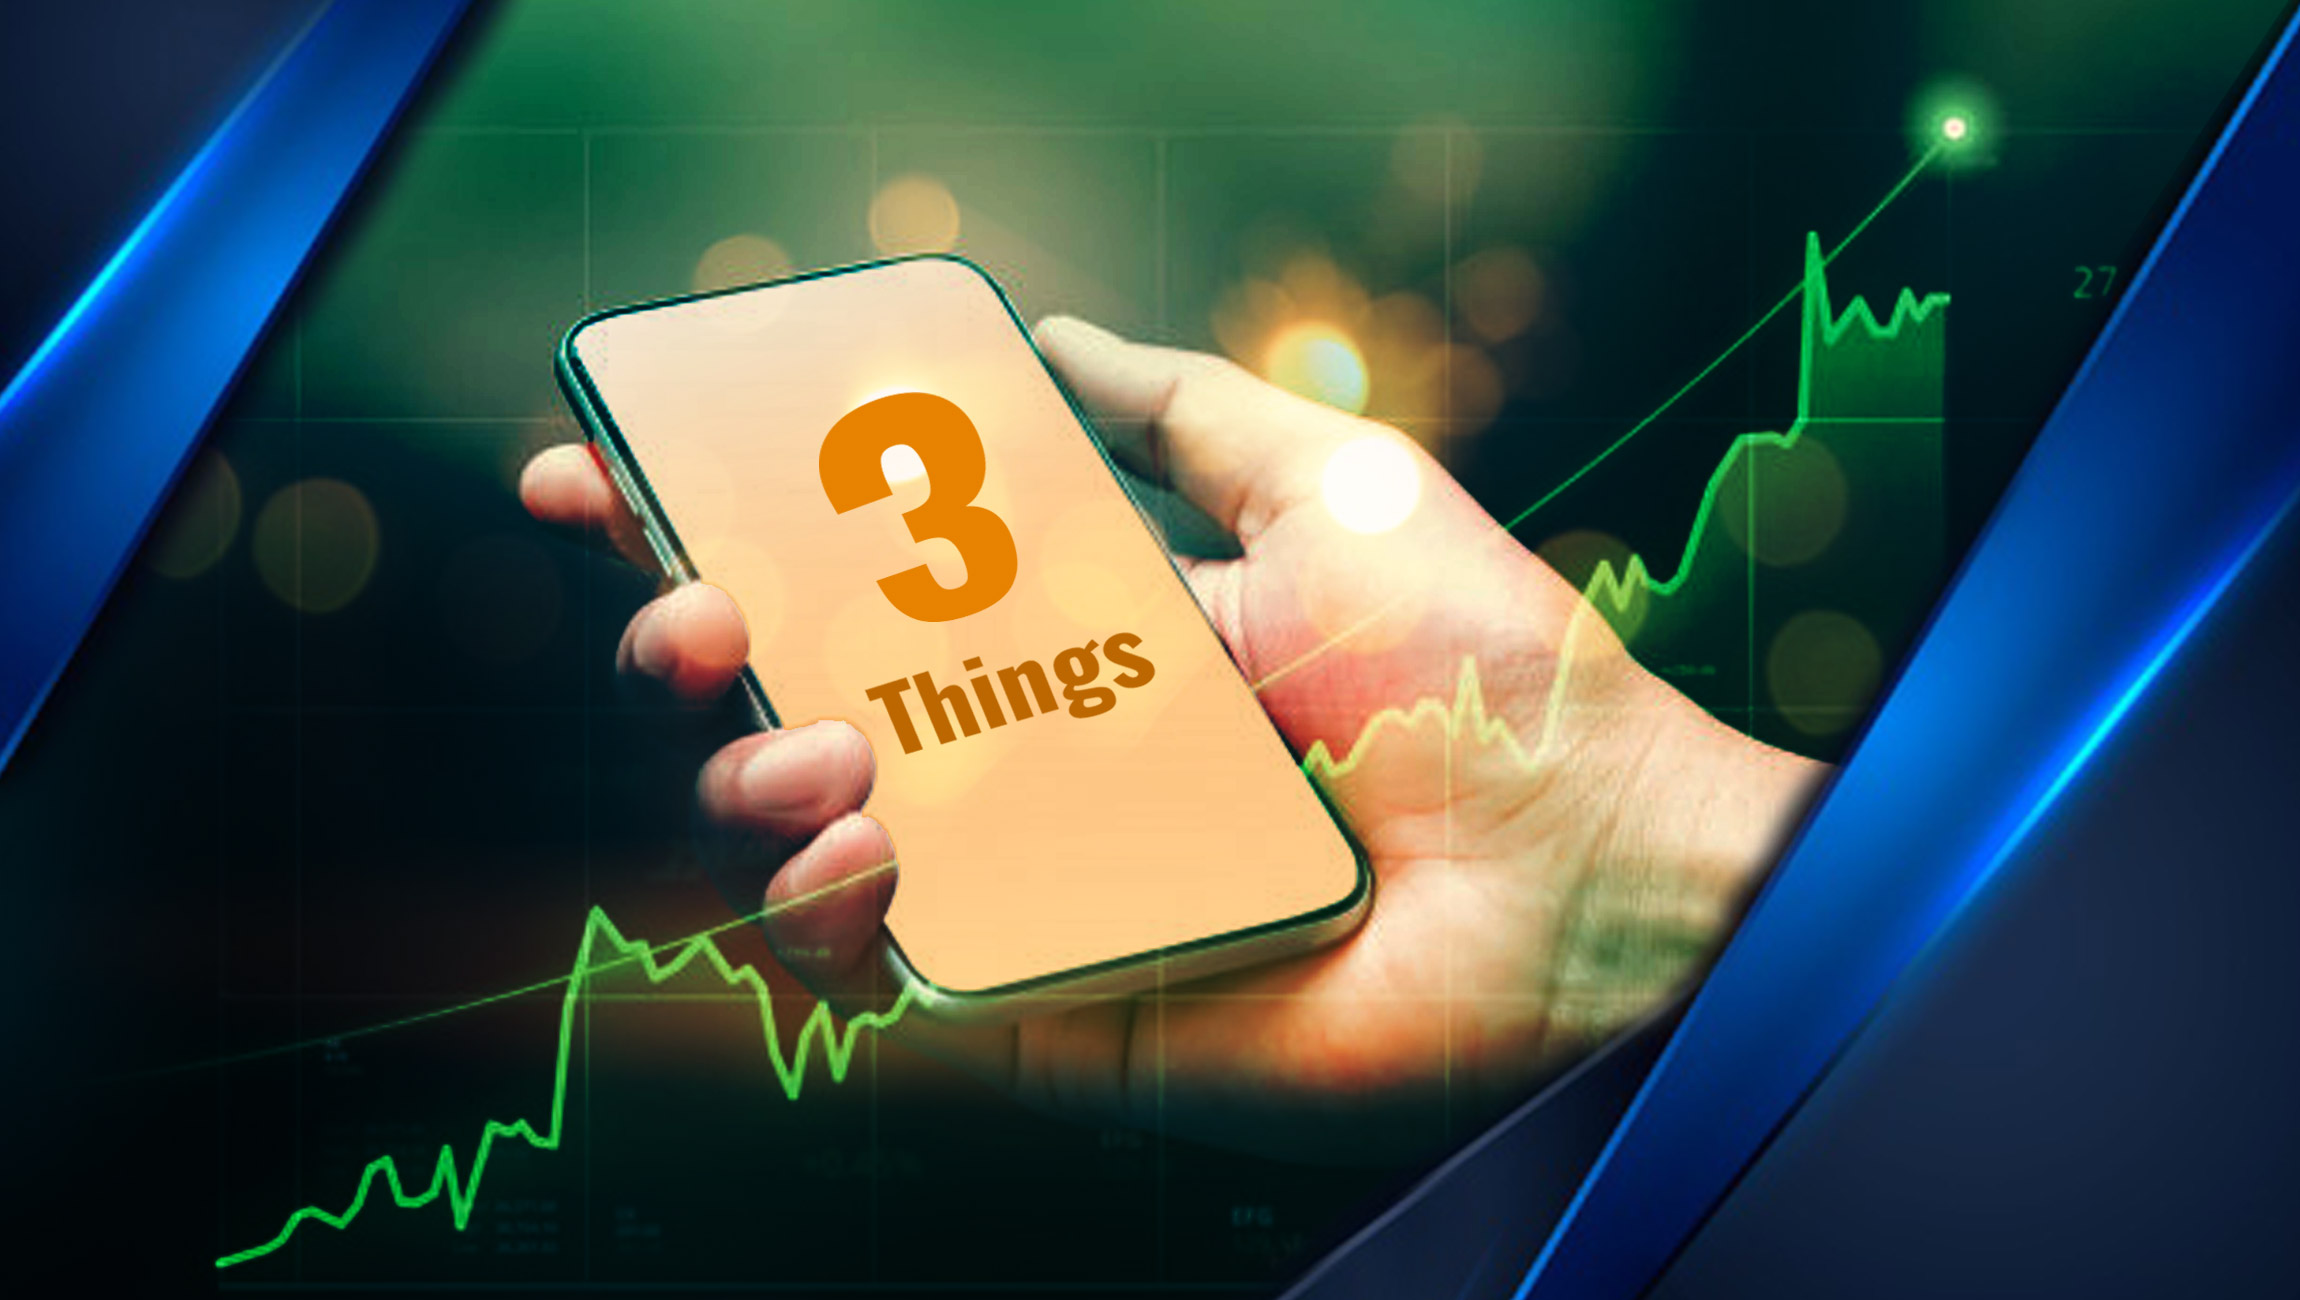 Finance Marketers Need These Three Things in Their Mobile Strategy